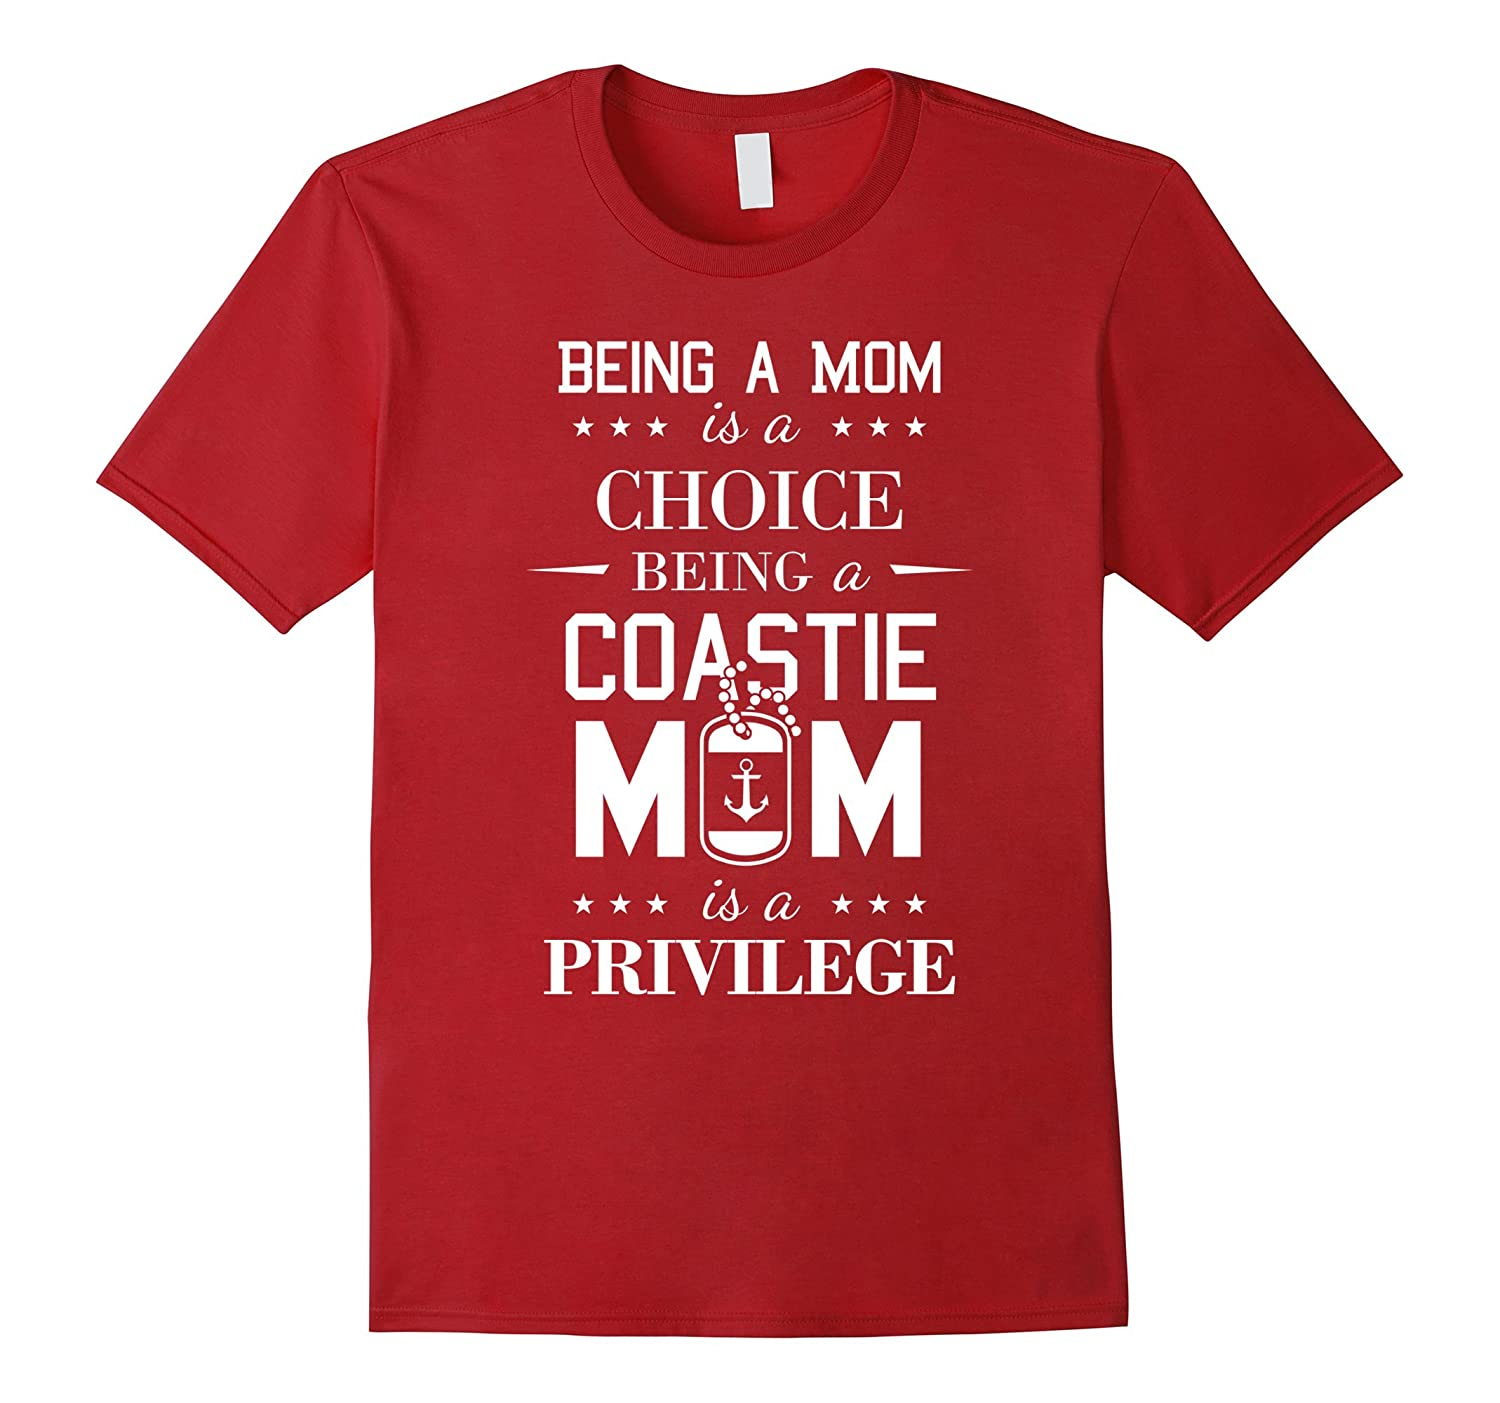 Being a a Coastie Mom is a Privilege T-shirt